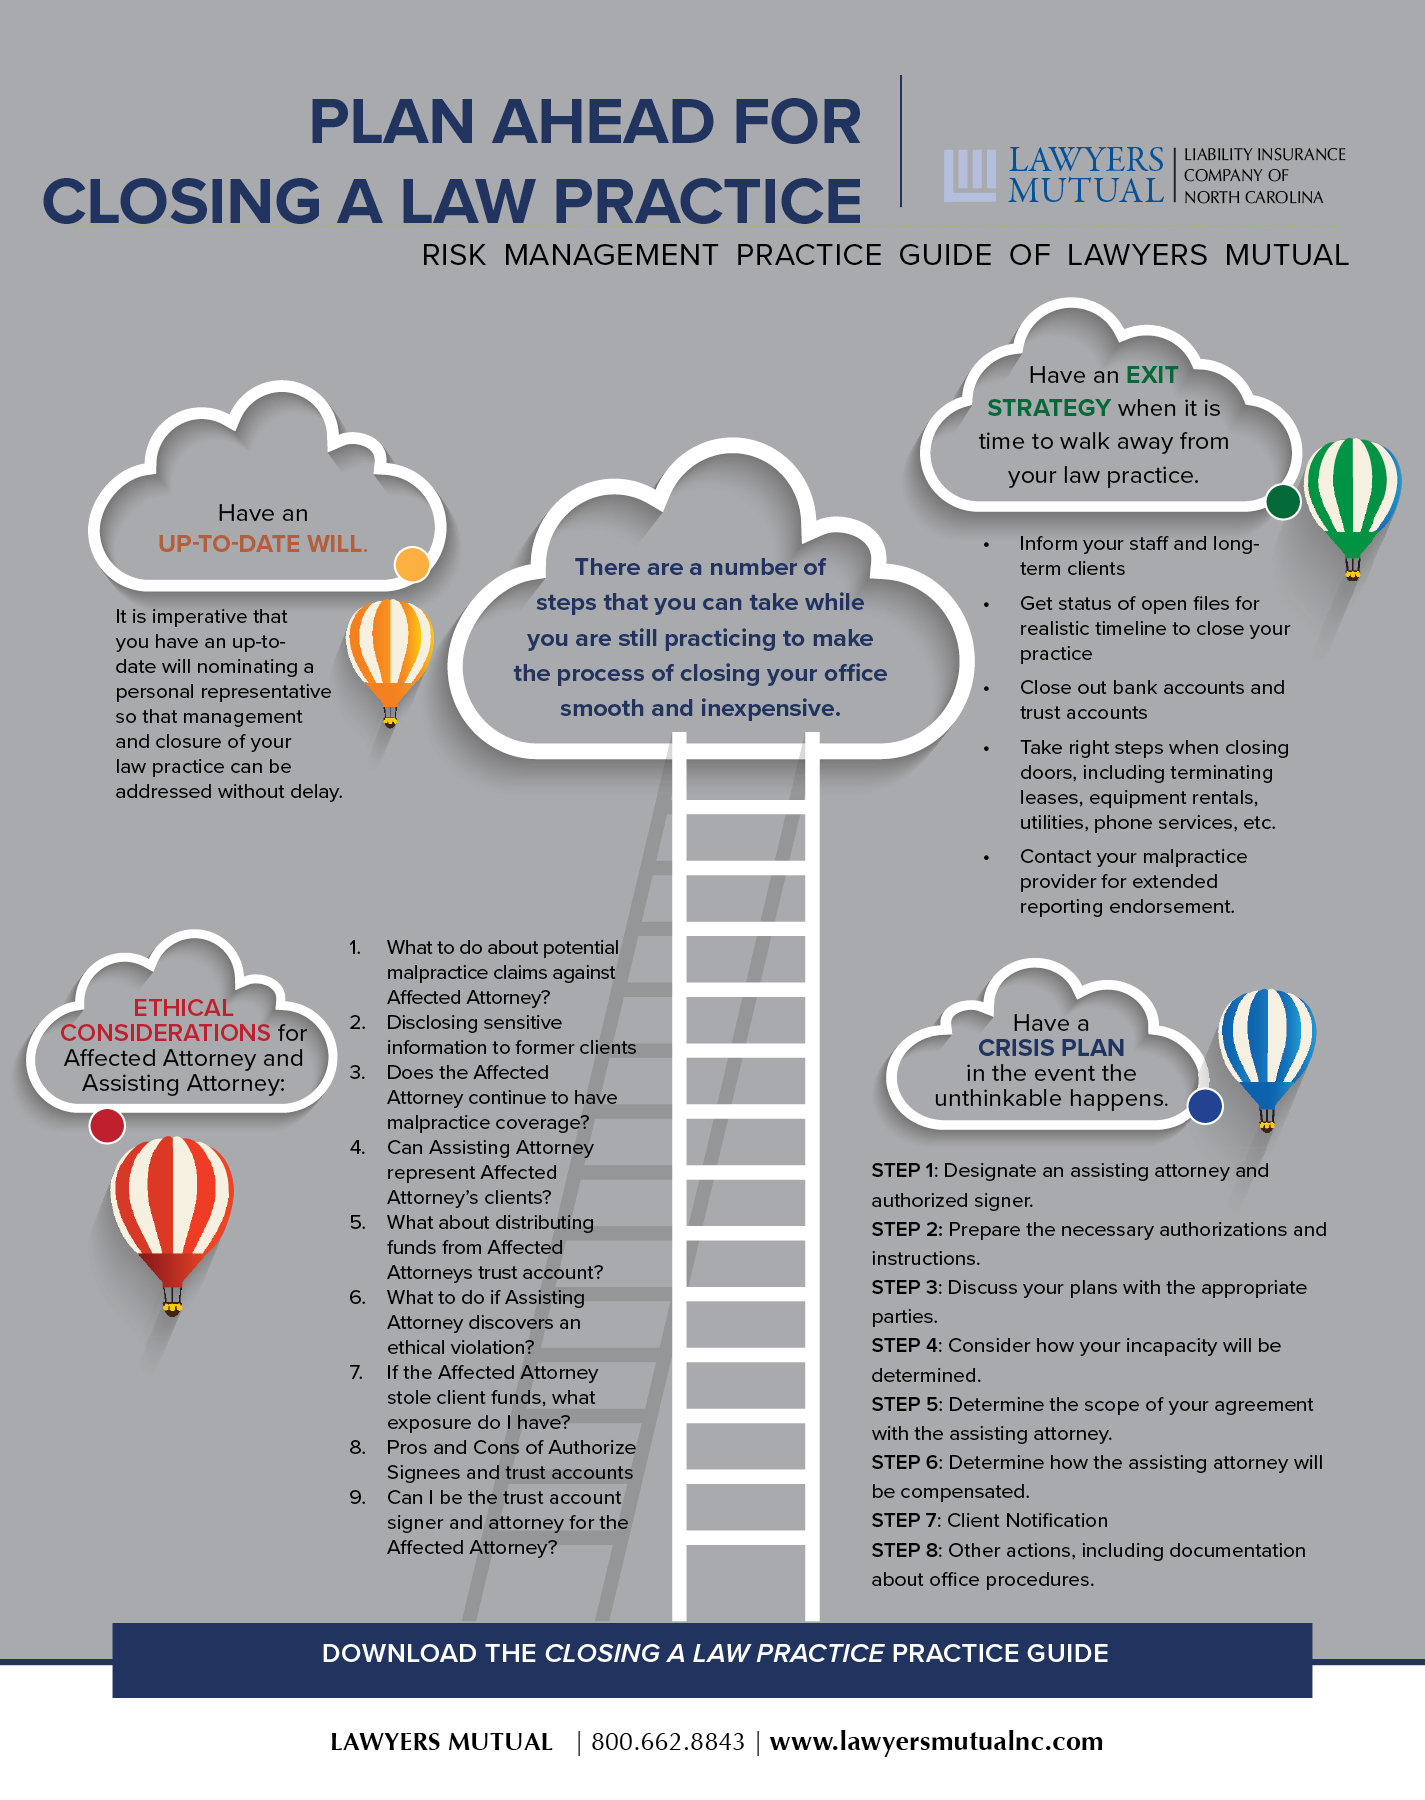 plan ahead for closing a law practice infographic